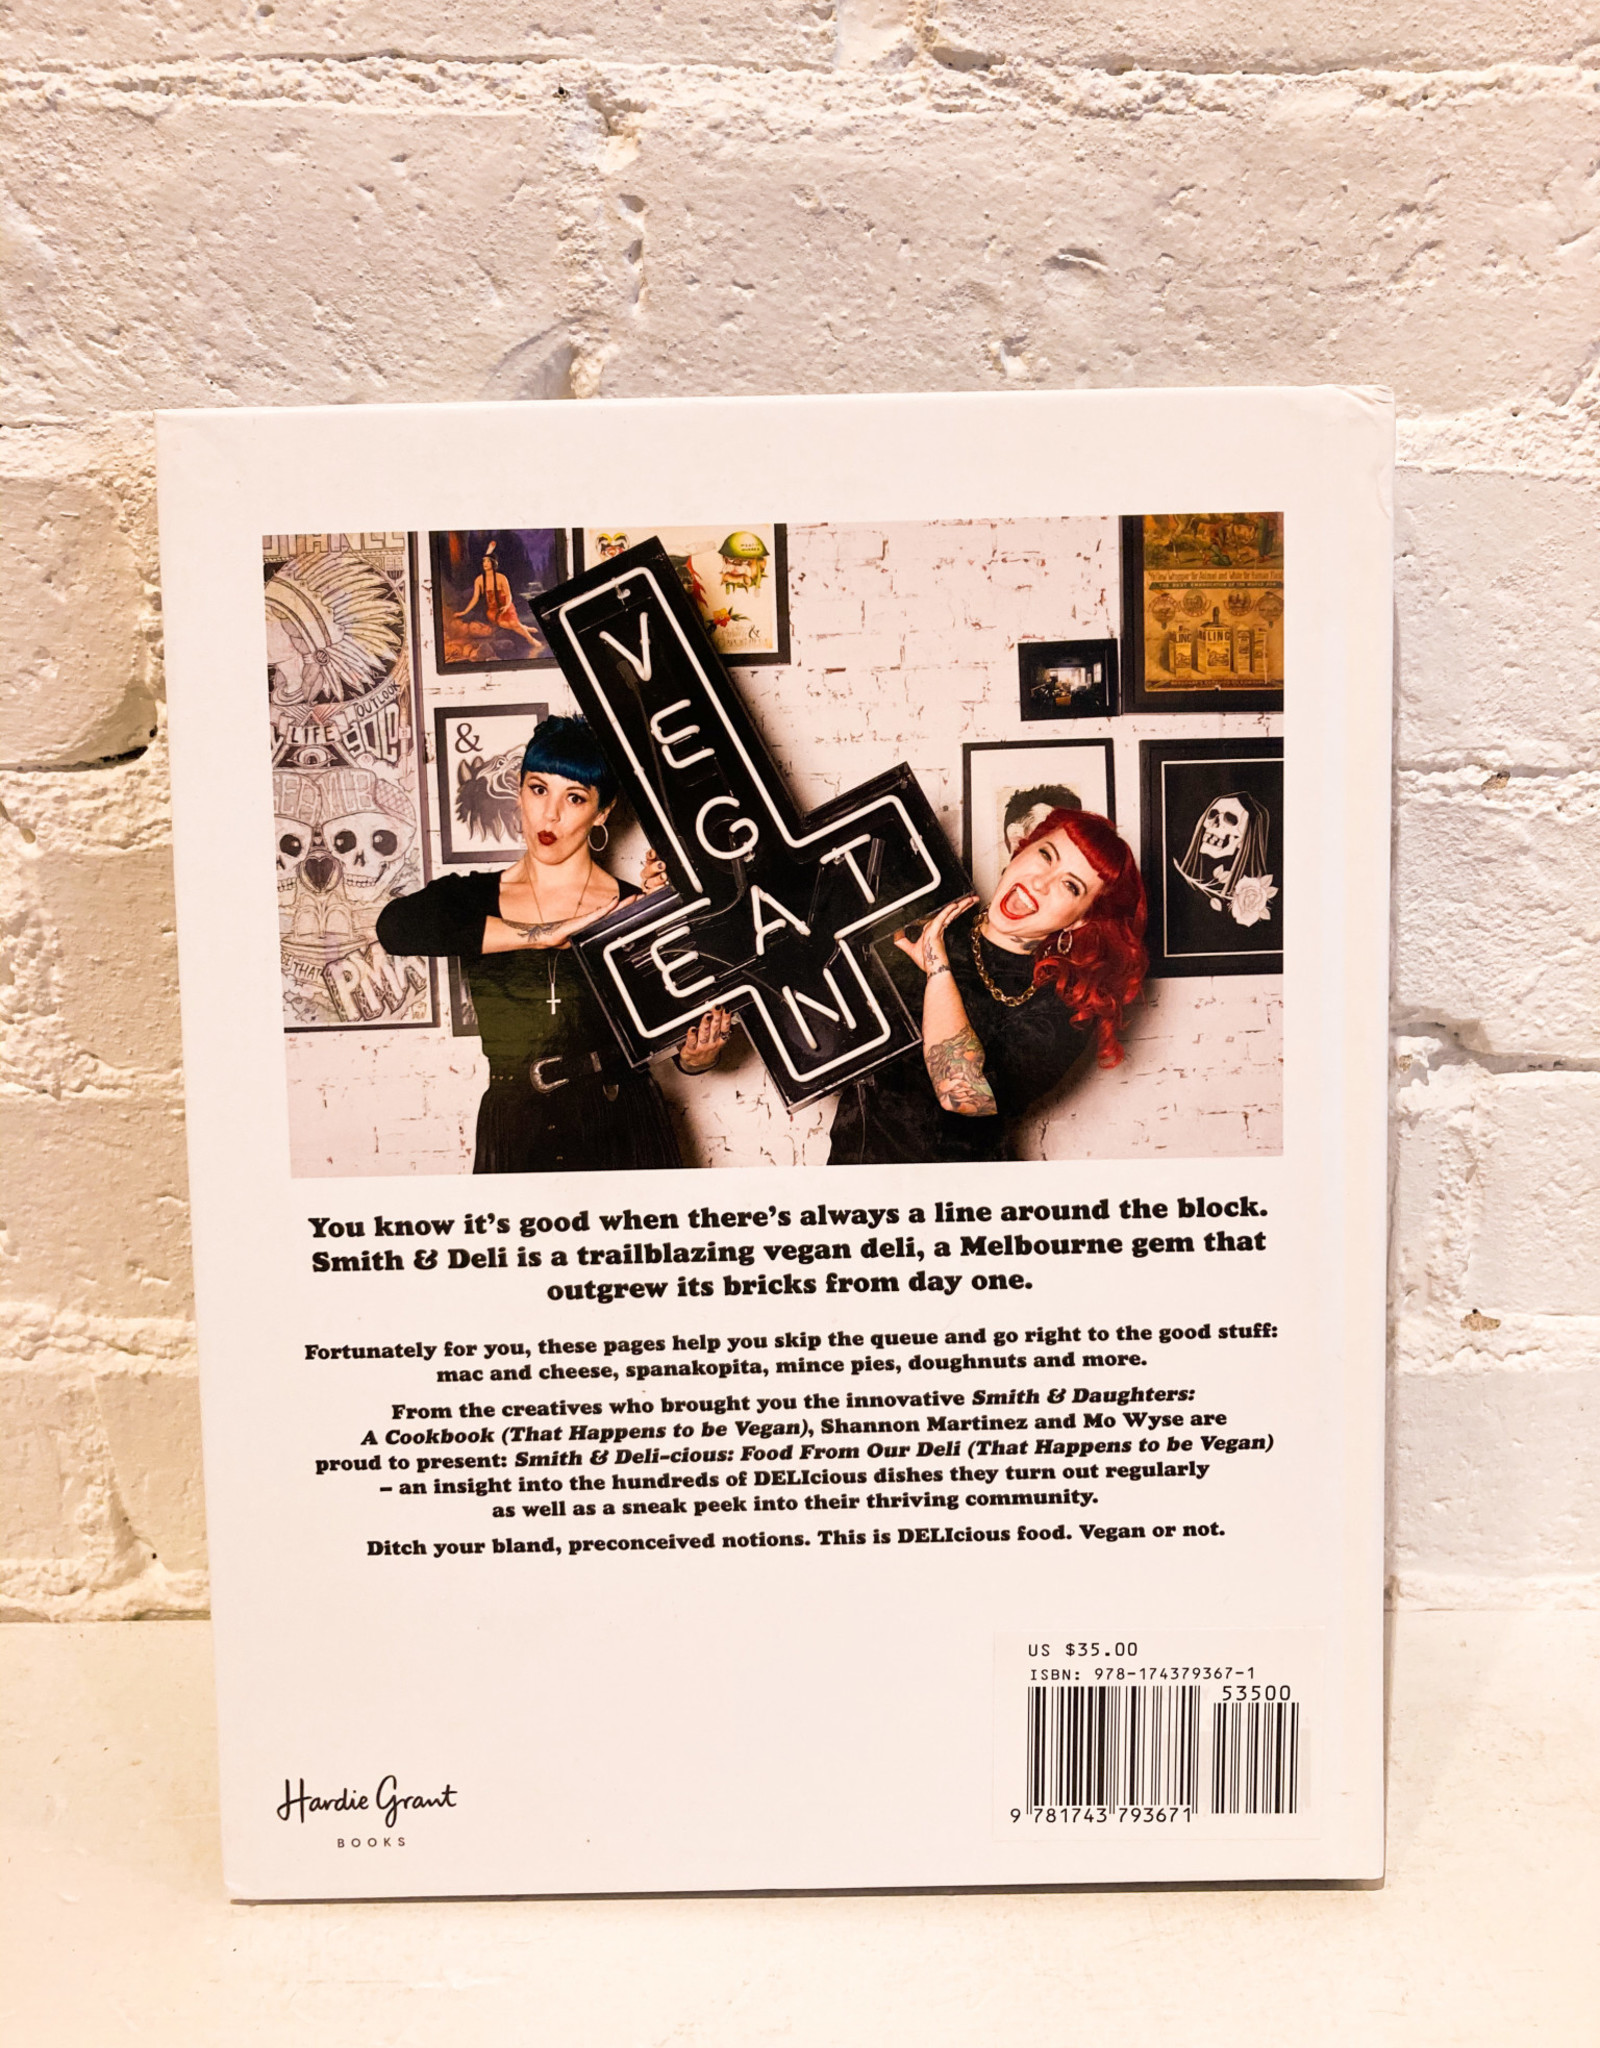 Smith & Deli-cious: Food From our Deli (That Happens to be Vegan) By Shannon Martinez & Mo Wyse